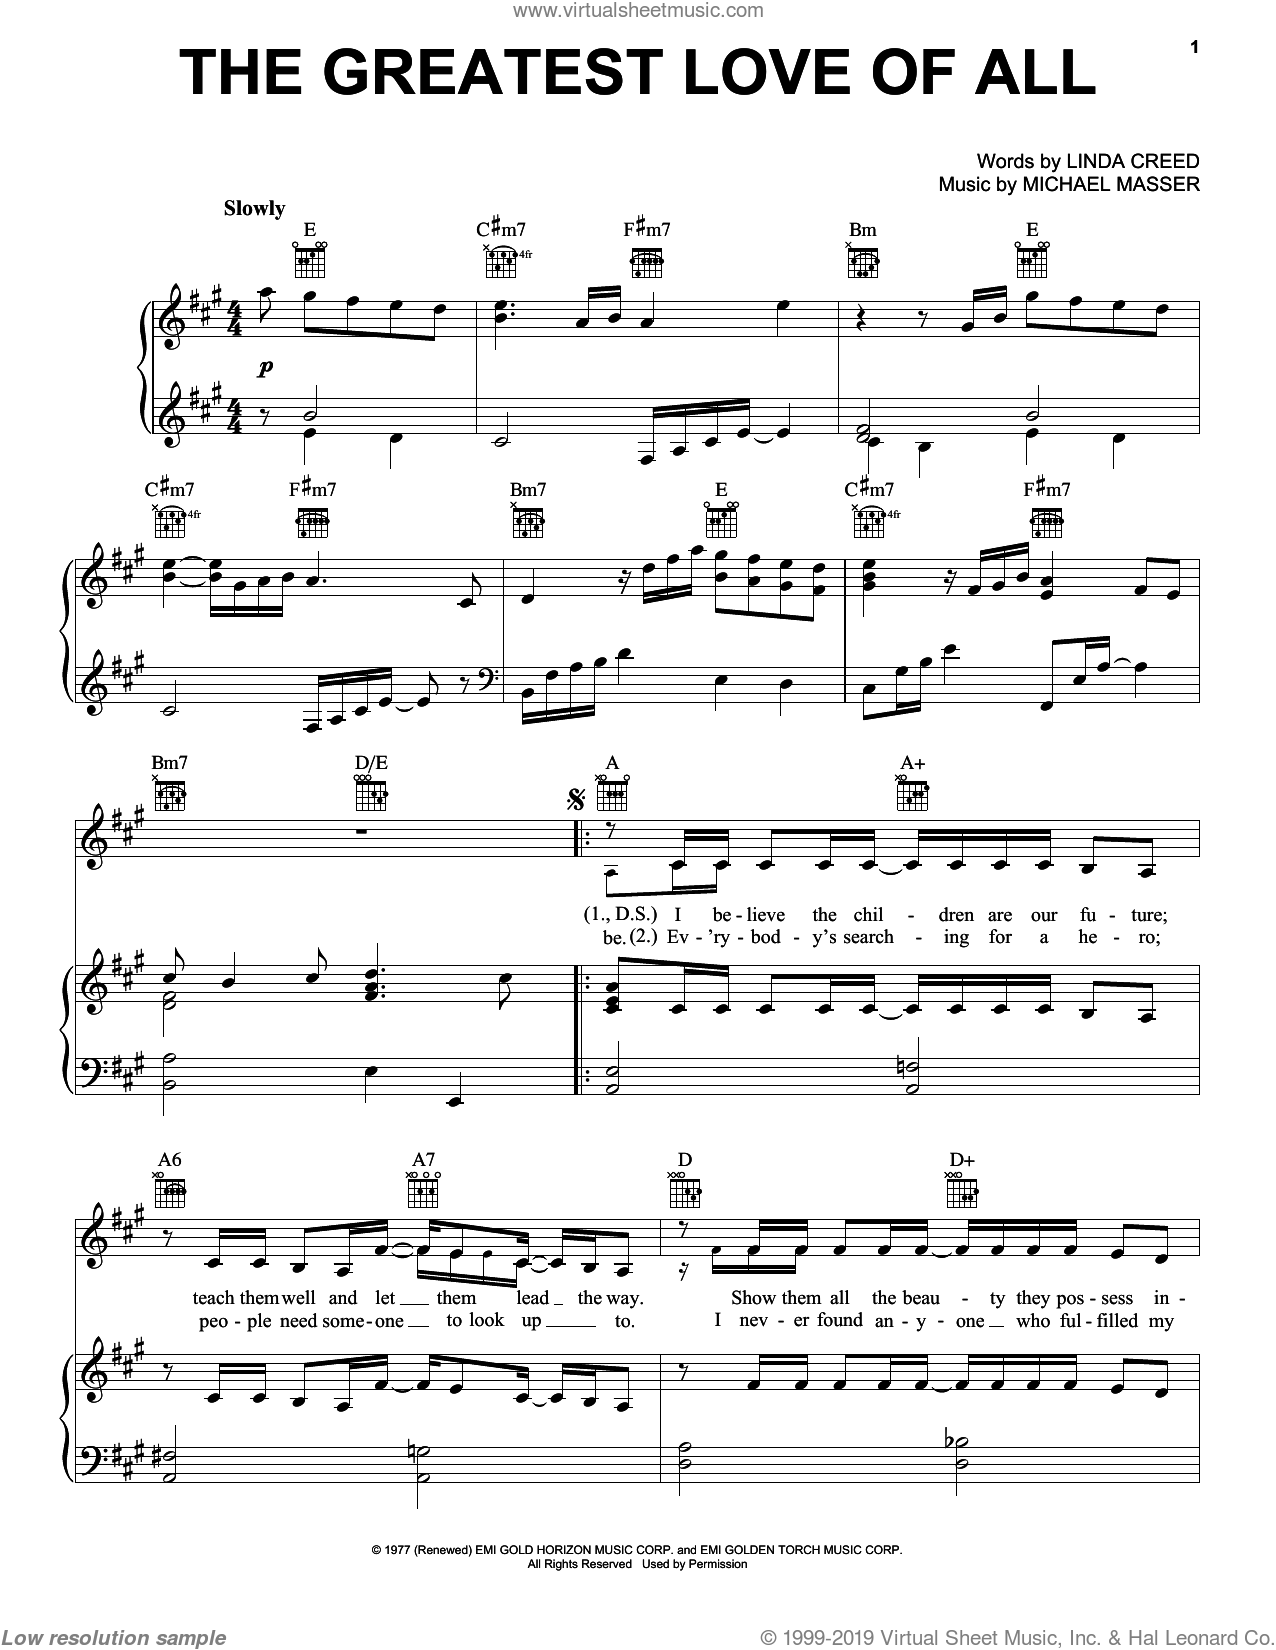 The Greatest Love Of All sheet music for voice, piano or guitar by Michael Masser and Linda Creed. Score Image Preview.